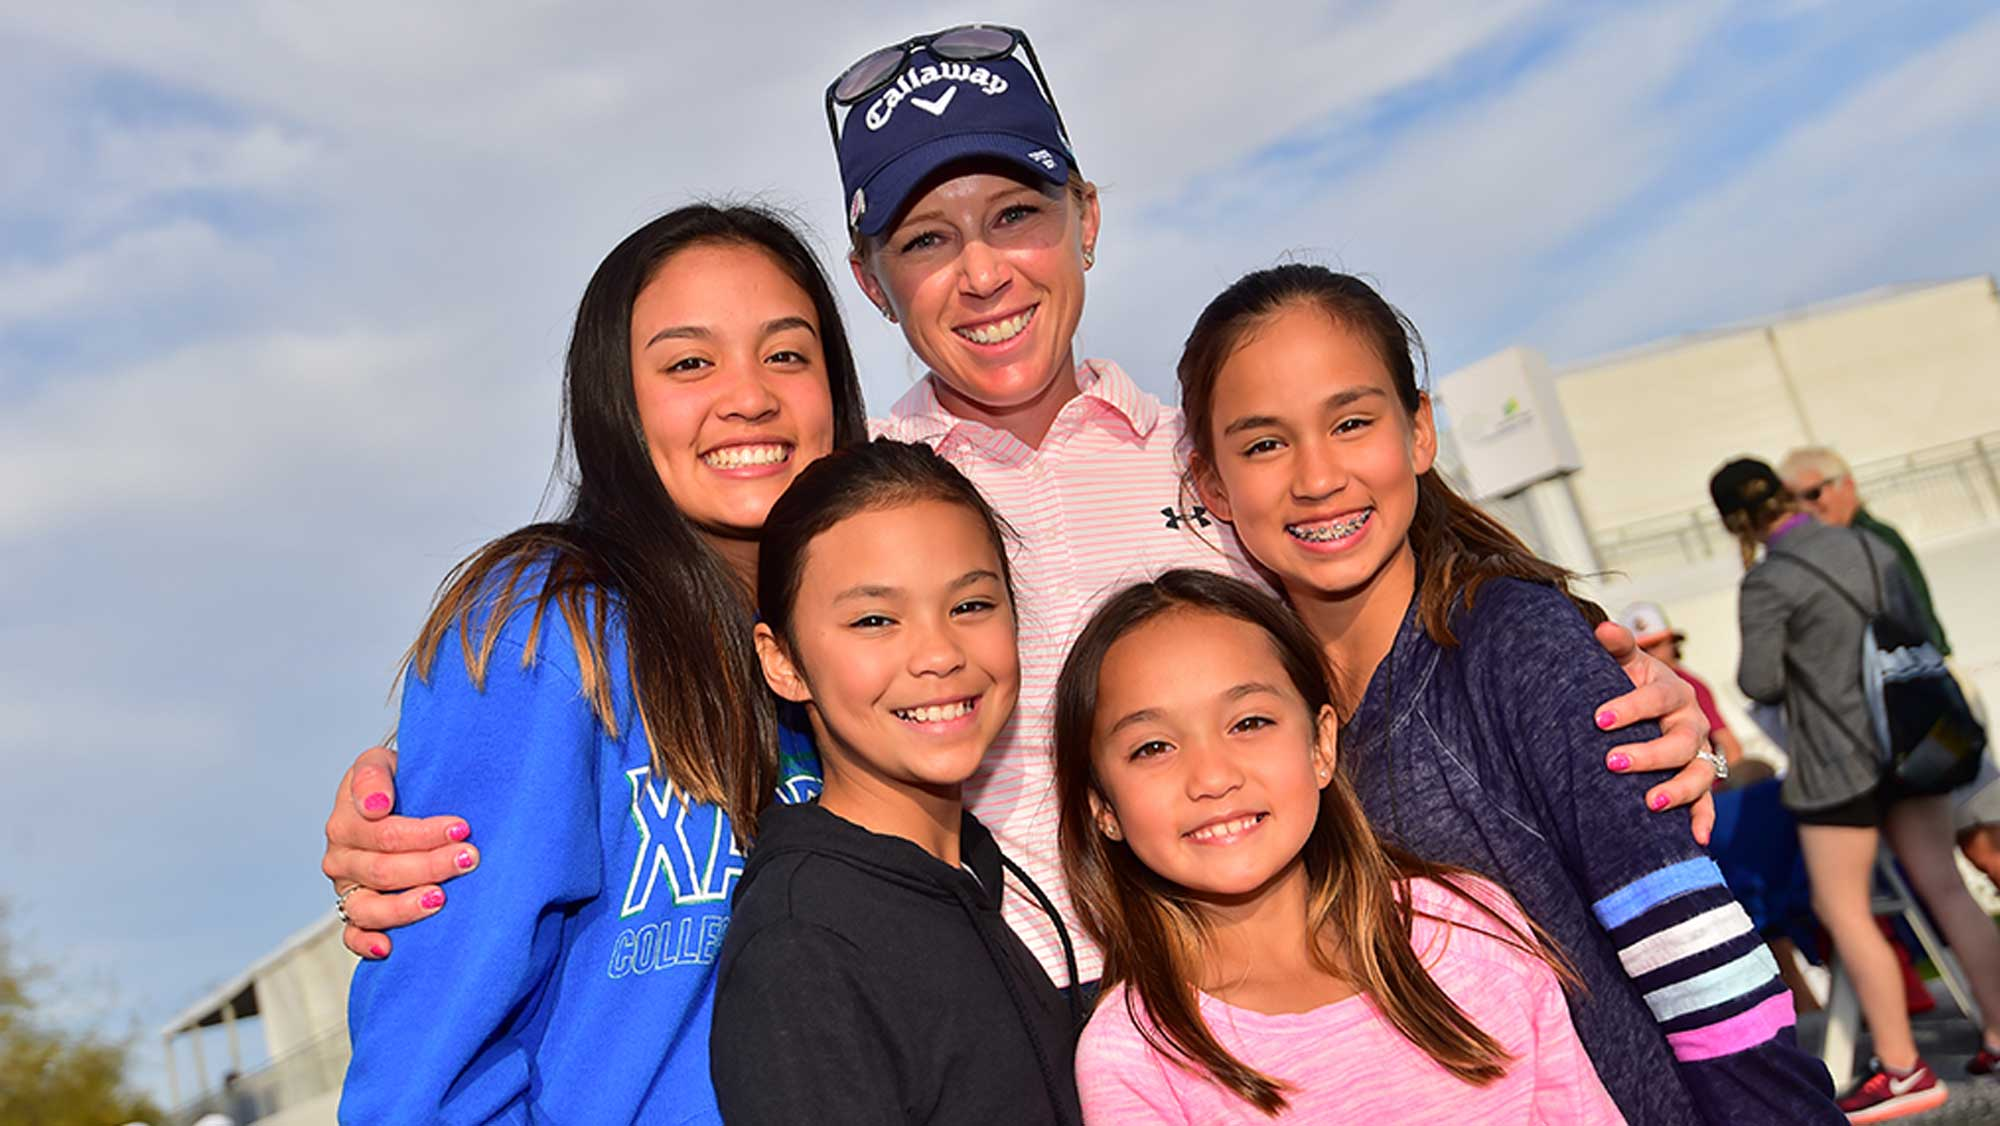 Morgan Pressel and Some Young Fans at the Founders Cup